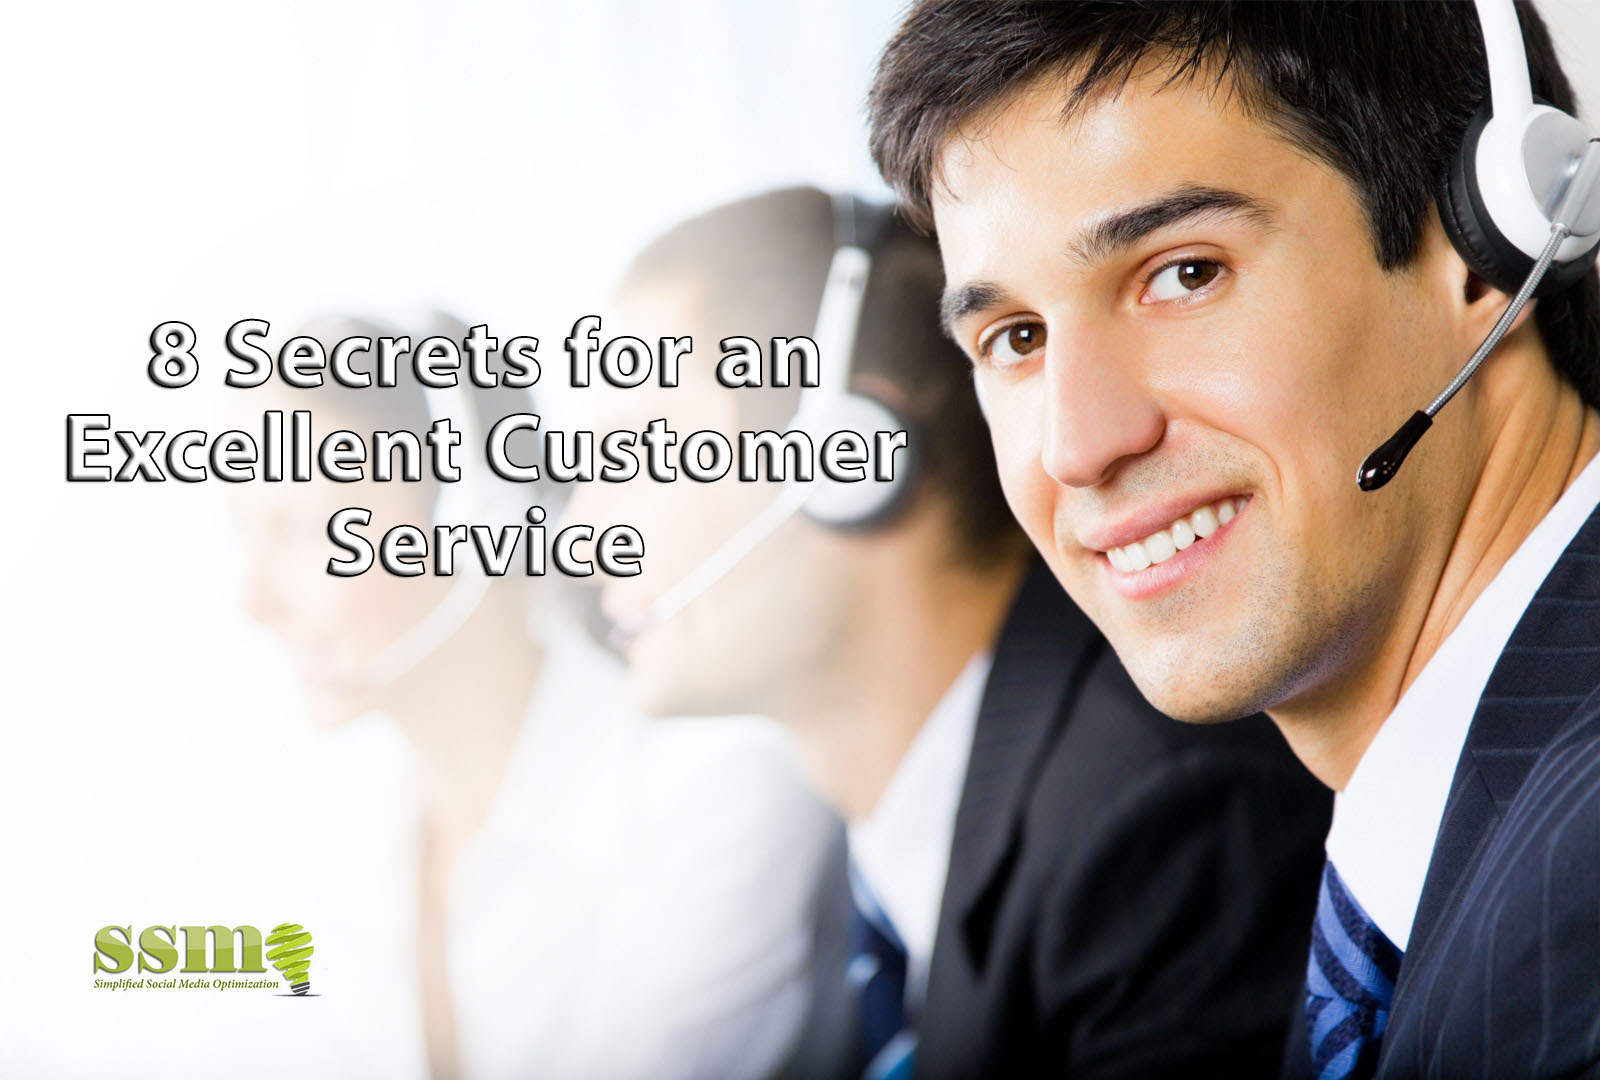 8 Secrets for an Excellent Customer Service